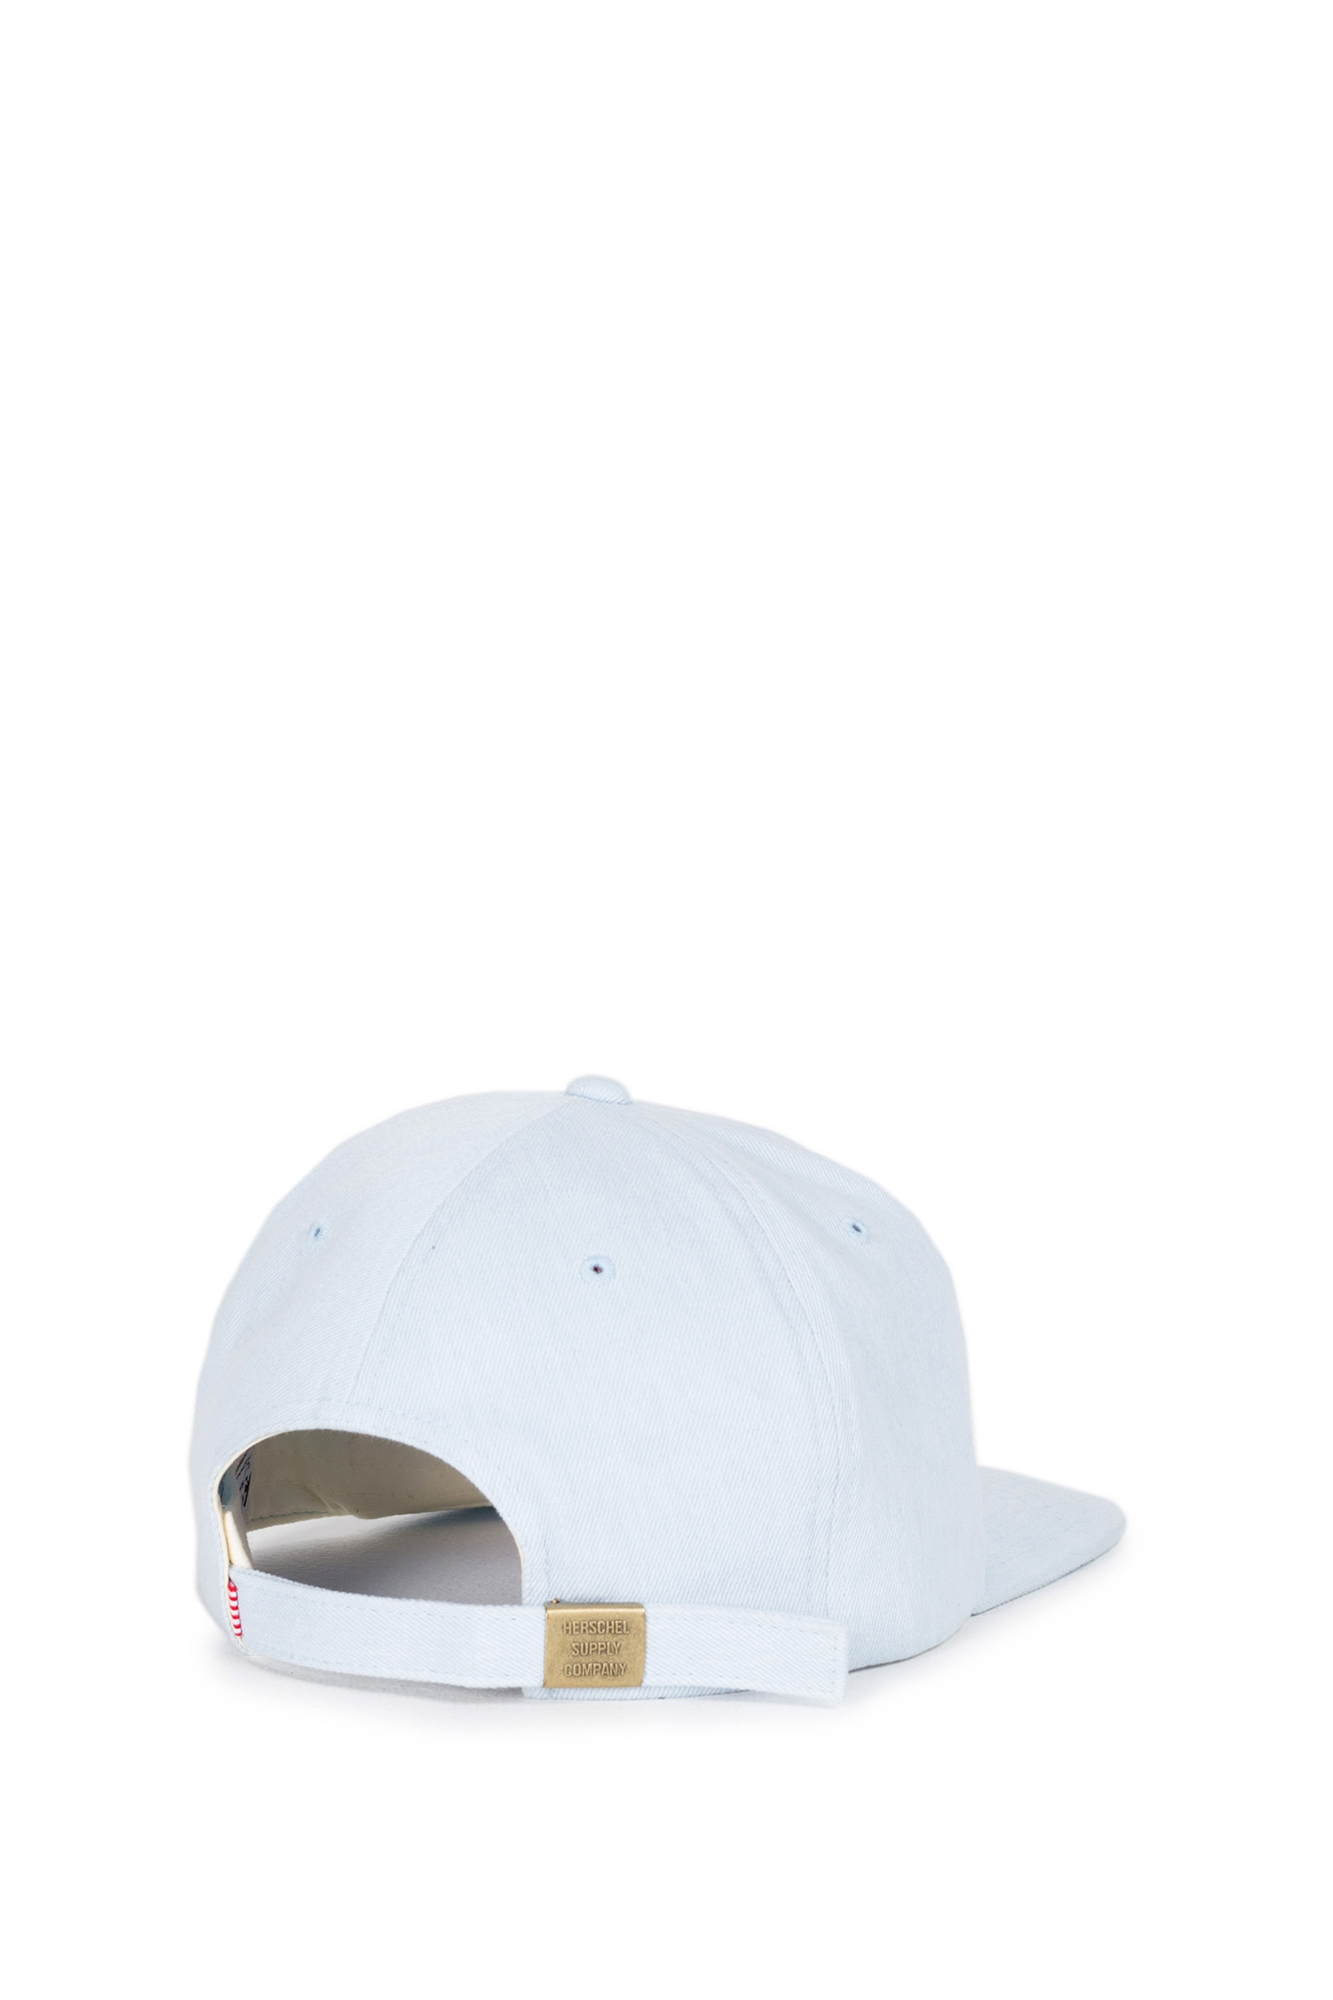 Herschel - Albert cap bleached light denim